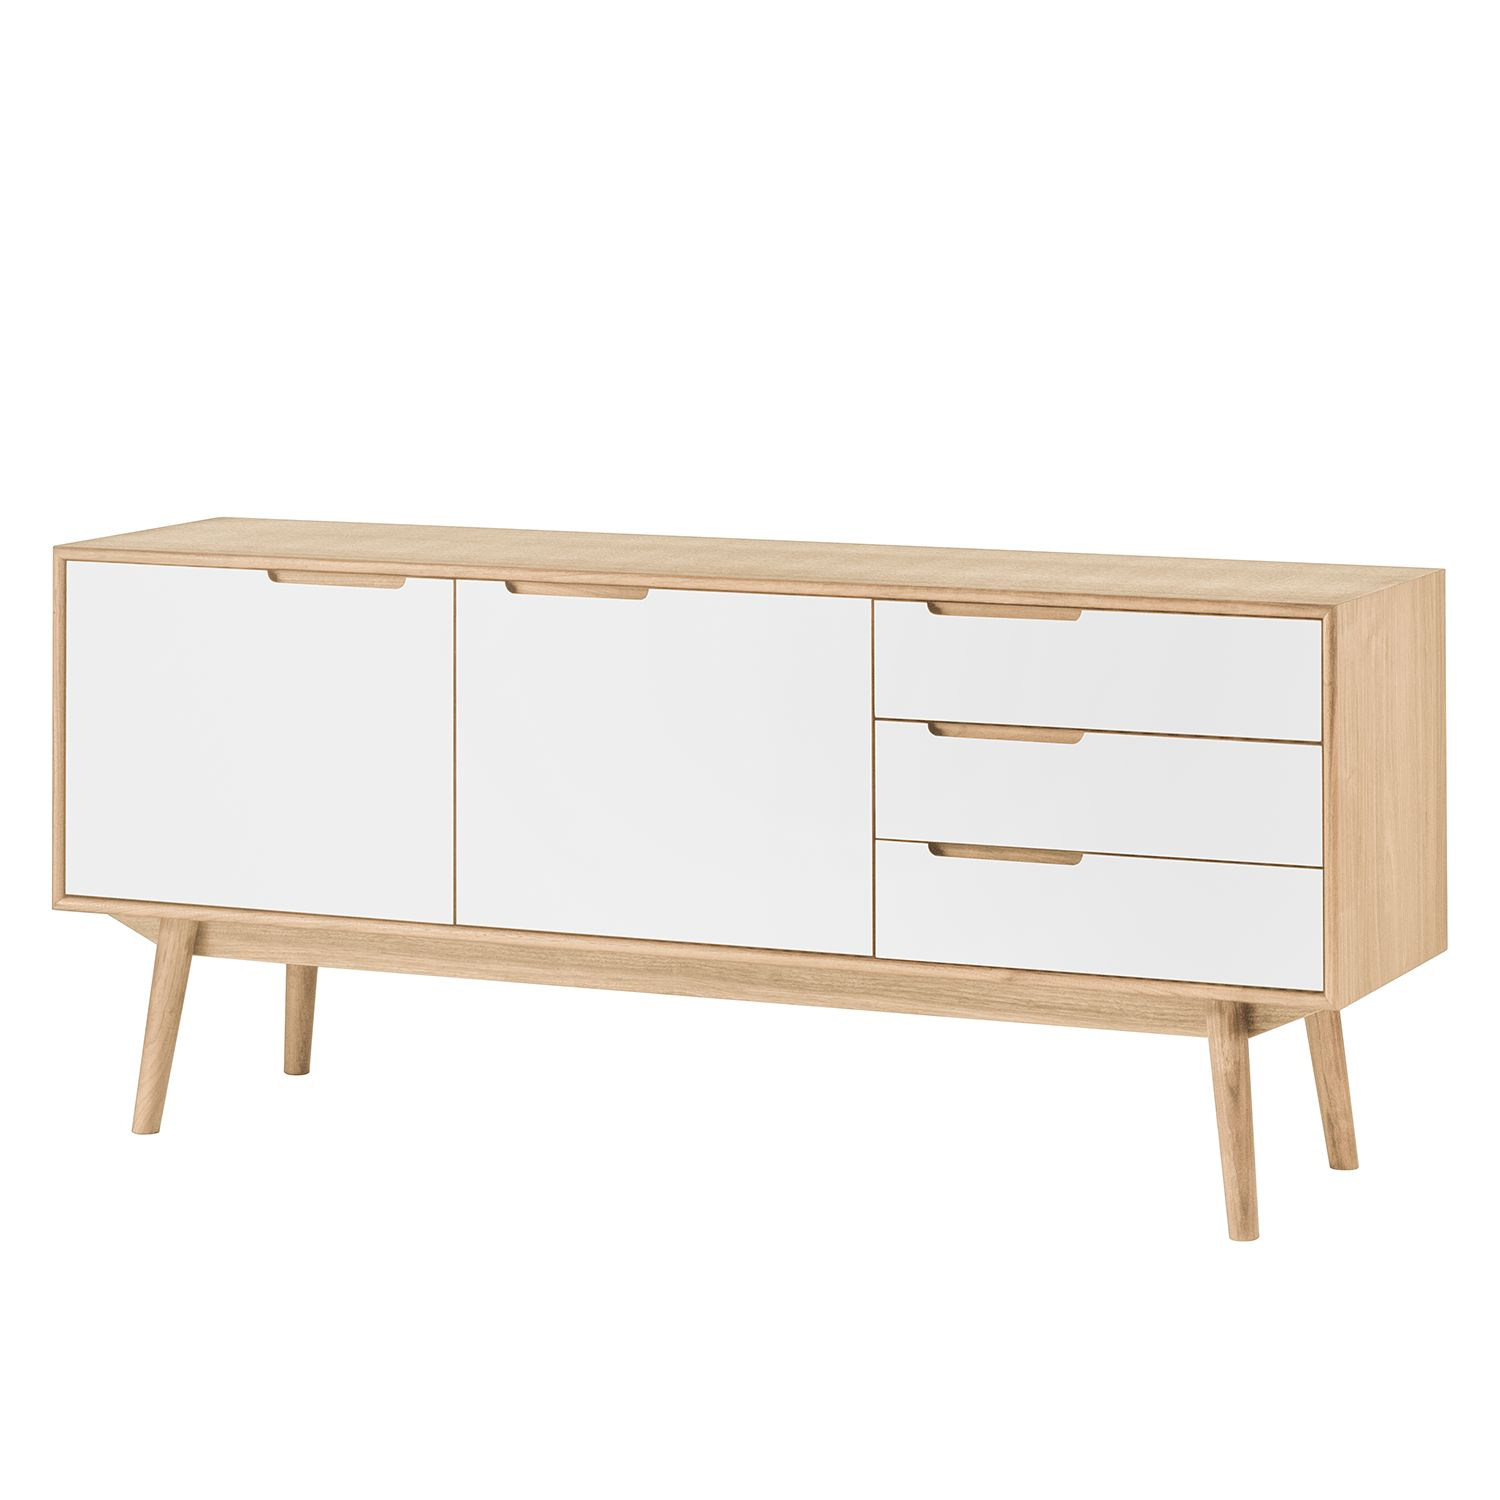 Home24 Dressoir Ledger, Studio Copenhagen